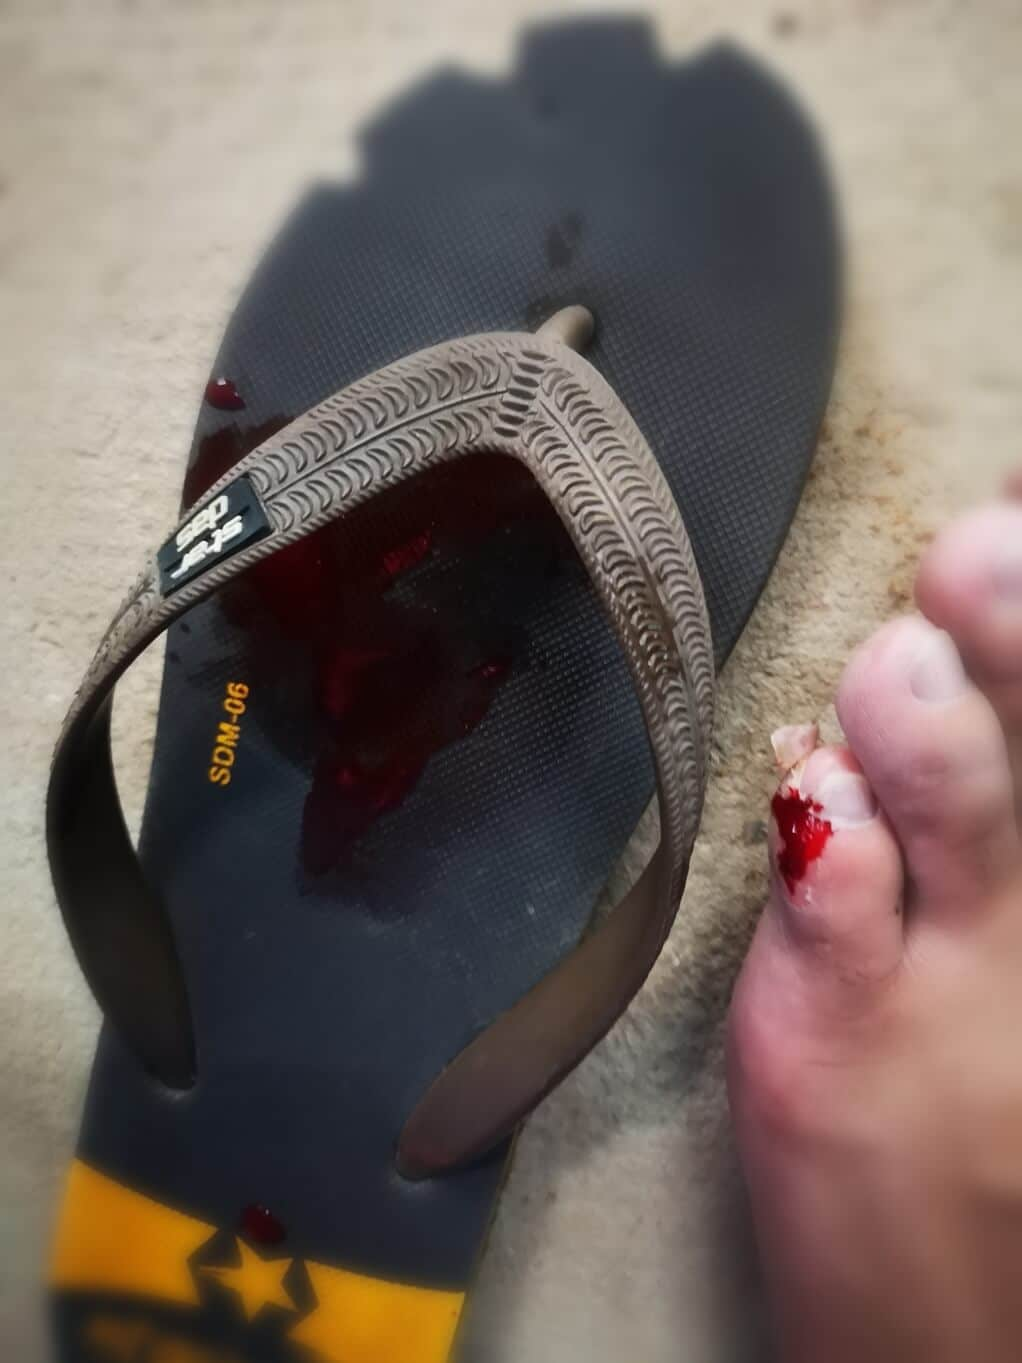 Chris toe injury